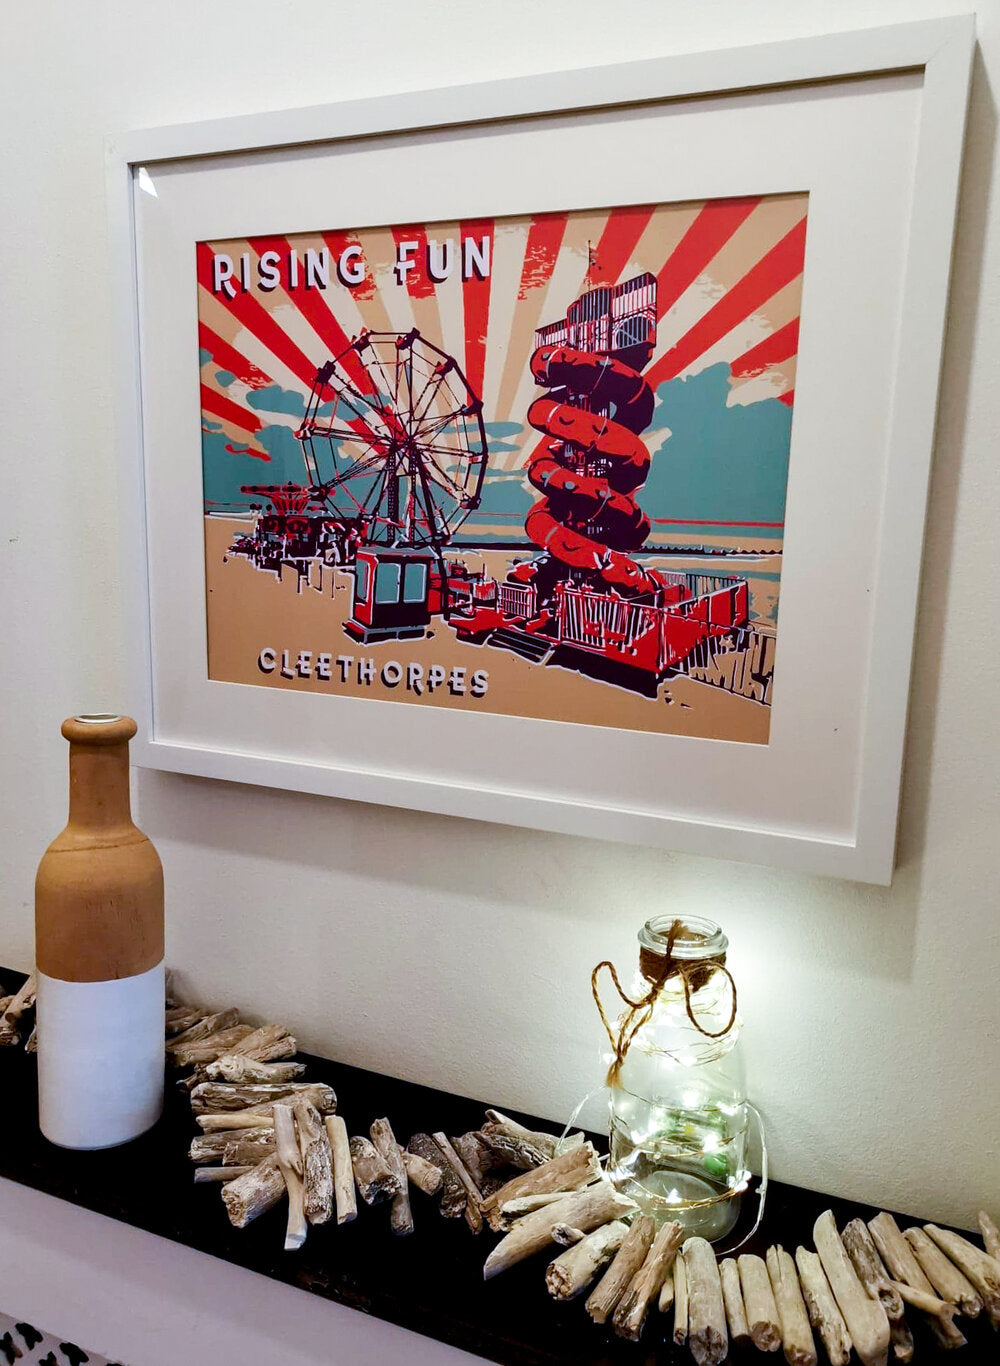 Rising Fun Framed Art. Original Art By BYGO